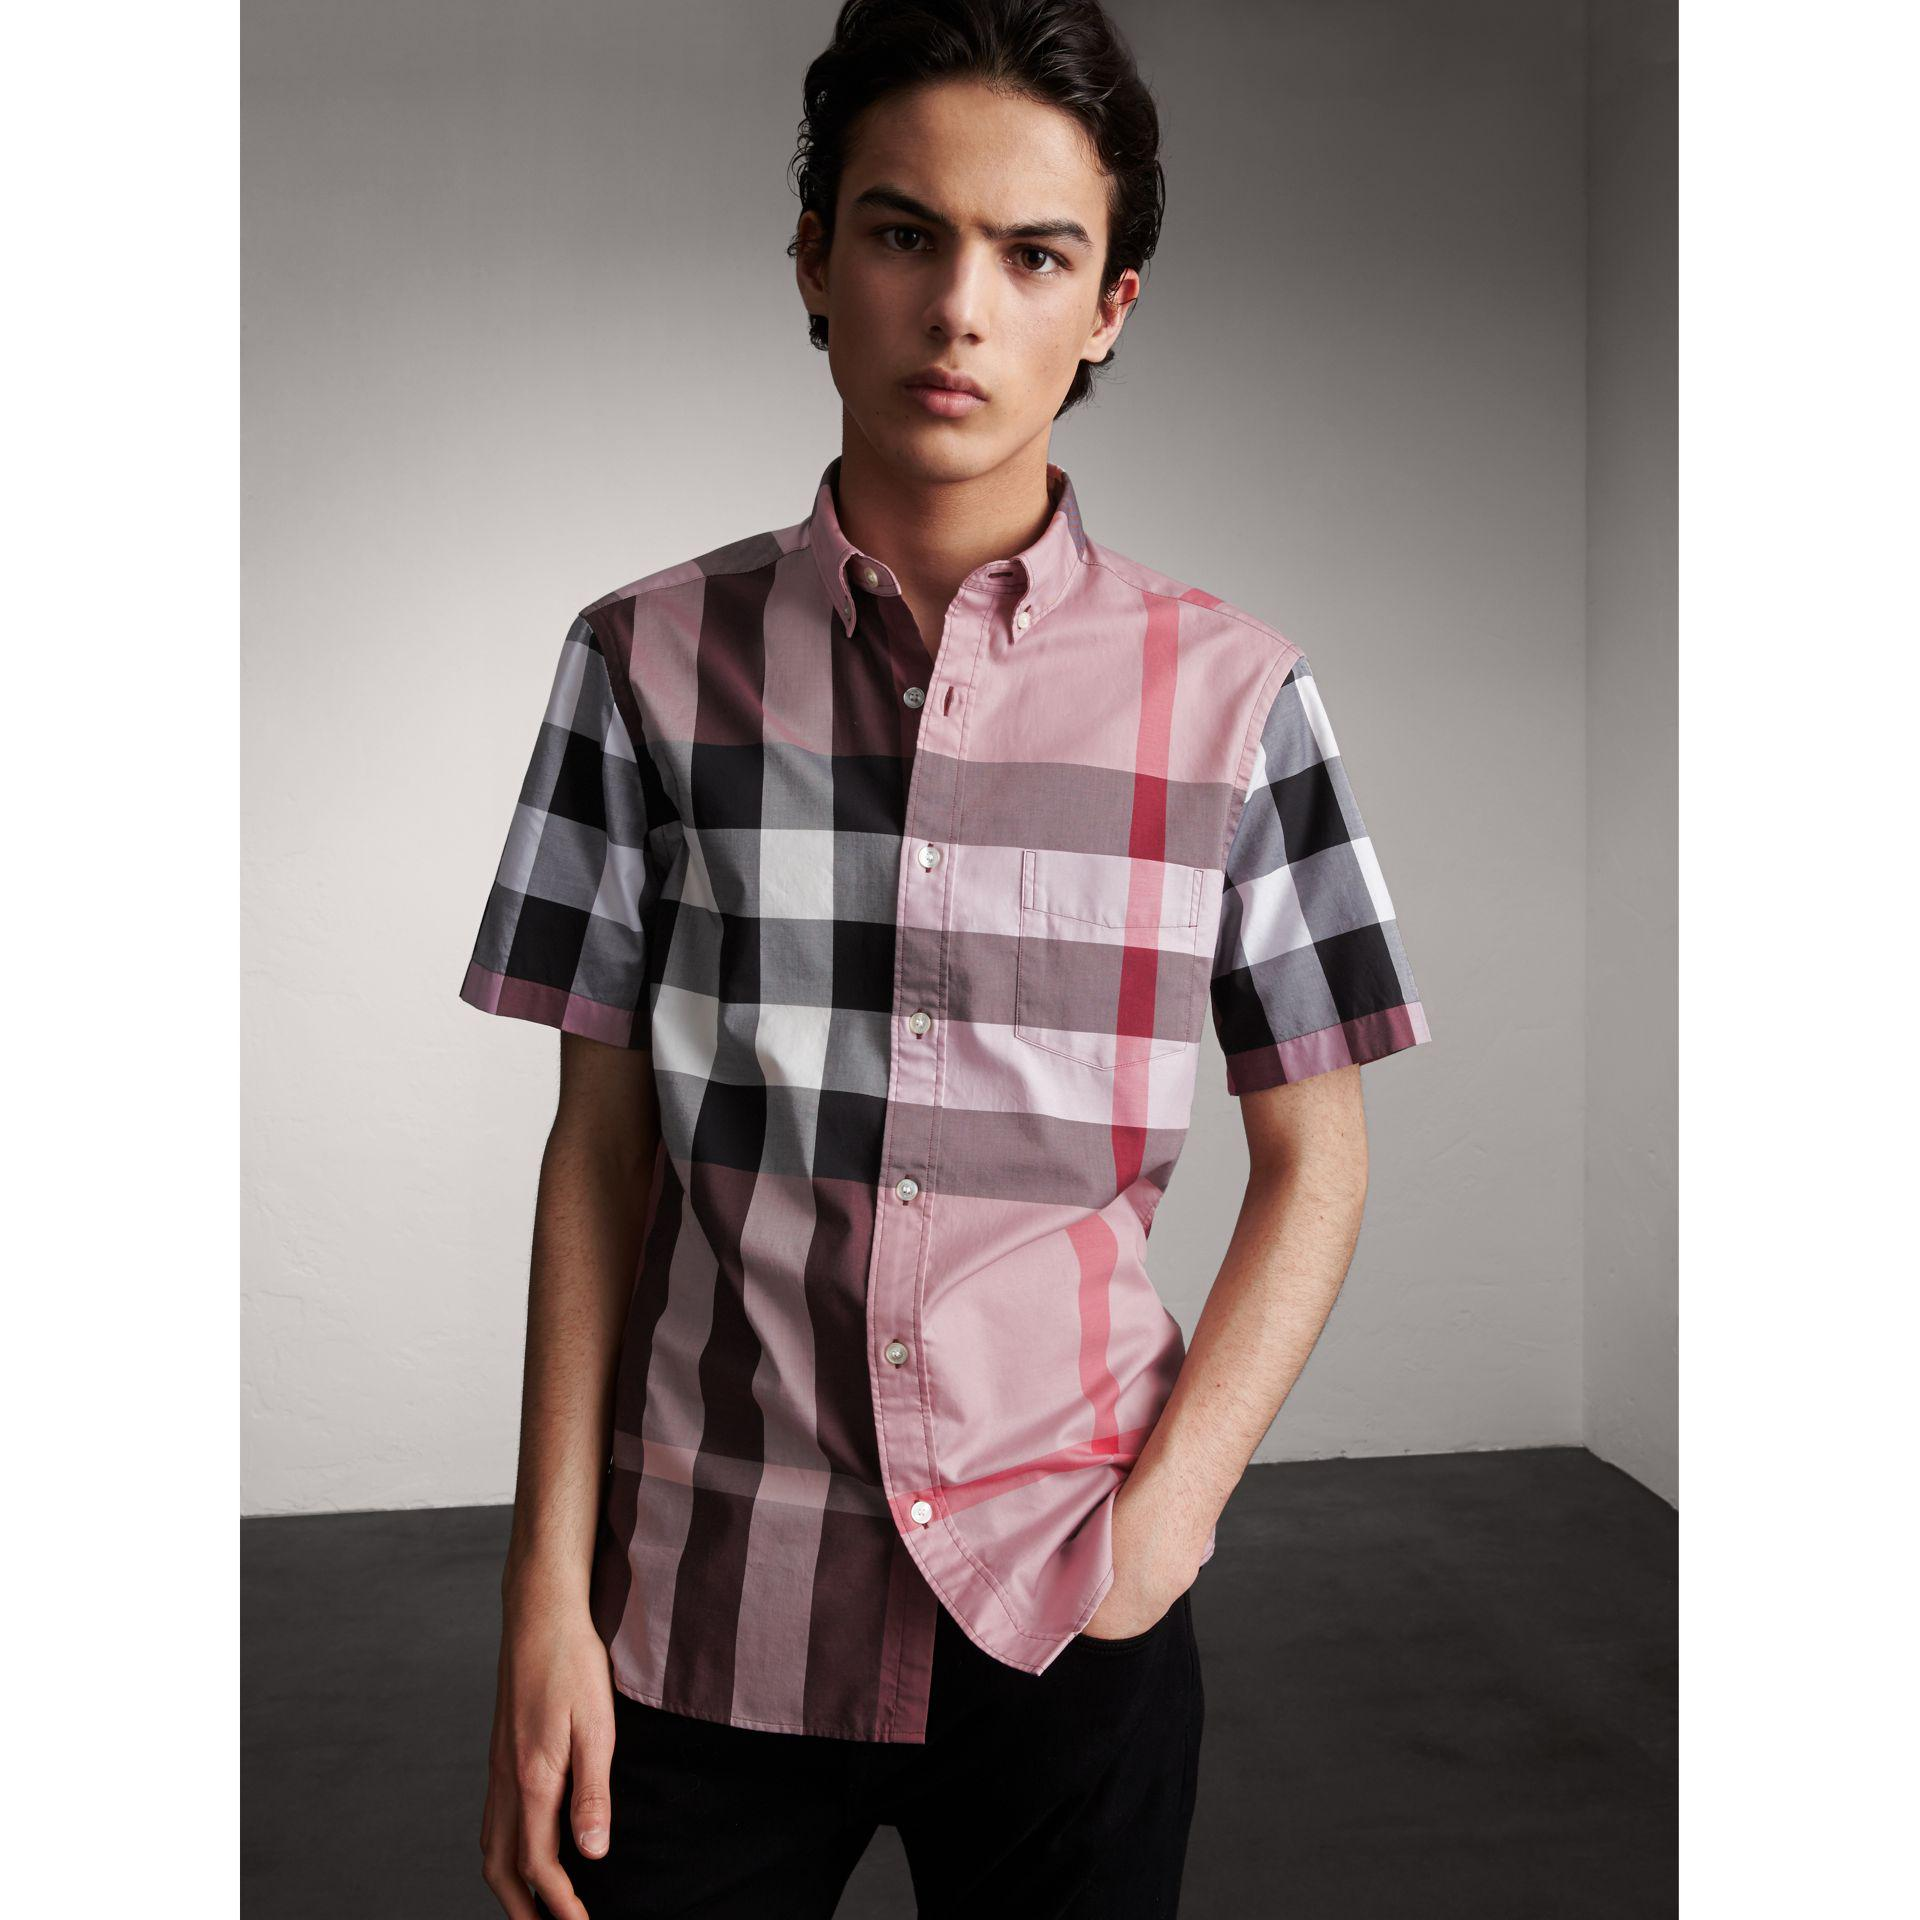 Burberry Check Cotton Short-sleeved Shirt Discount Perfect New Styles Cheap Online Free Shipping Official pWfEO19A1d